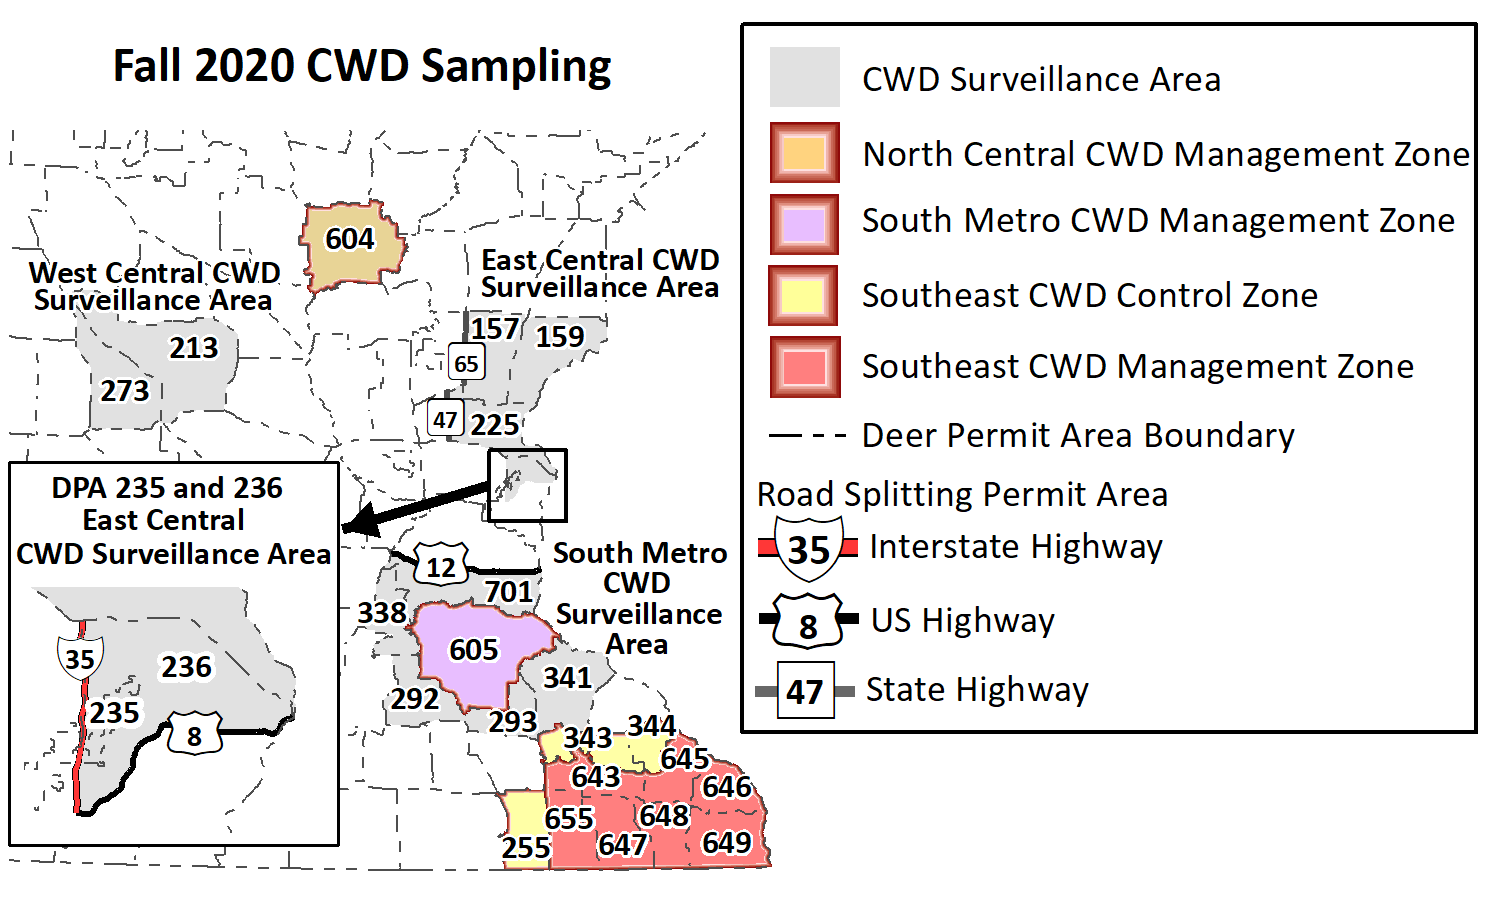 Map showing CWD sampling areas for 2020